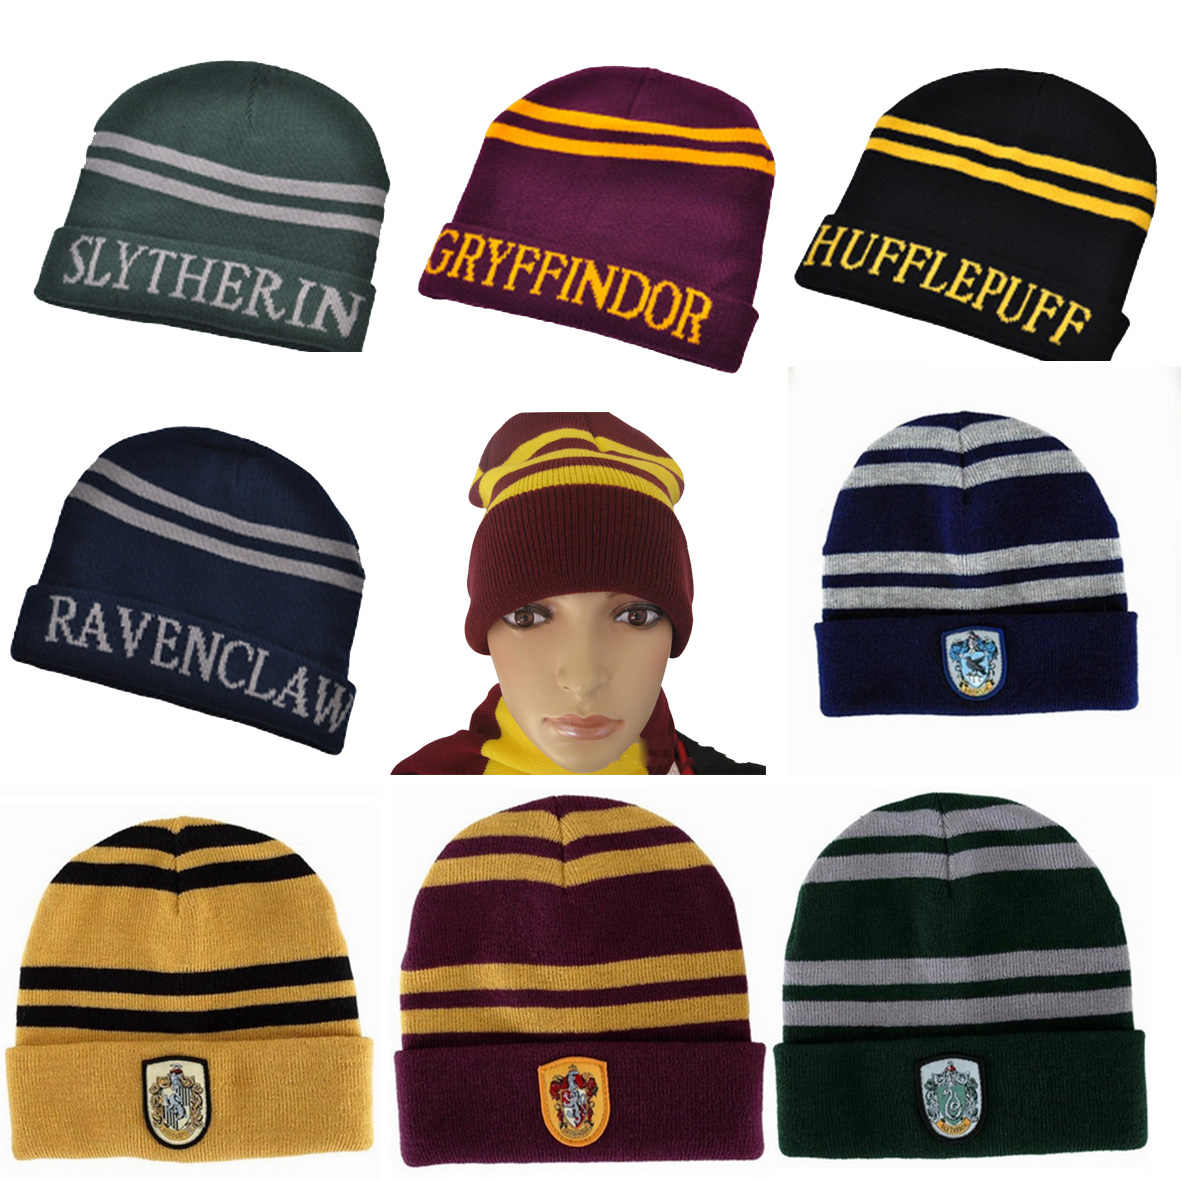 Harri Potter Hogwarts Four College Cosplay Toys Gryffindor Hufflepuff  Ravenclaw Slytherin Knitted Hat Earmuffs Cap Winter a182836d6df0